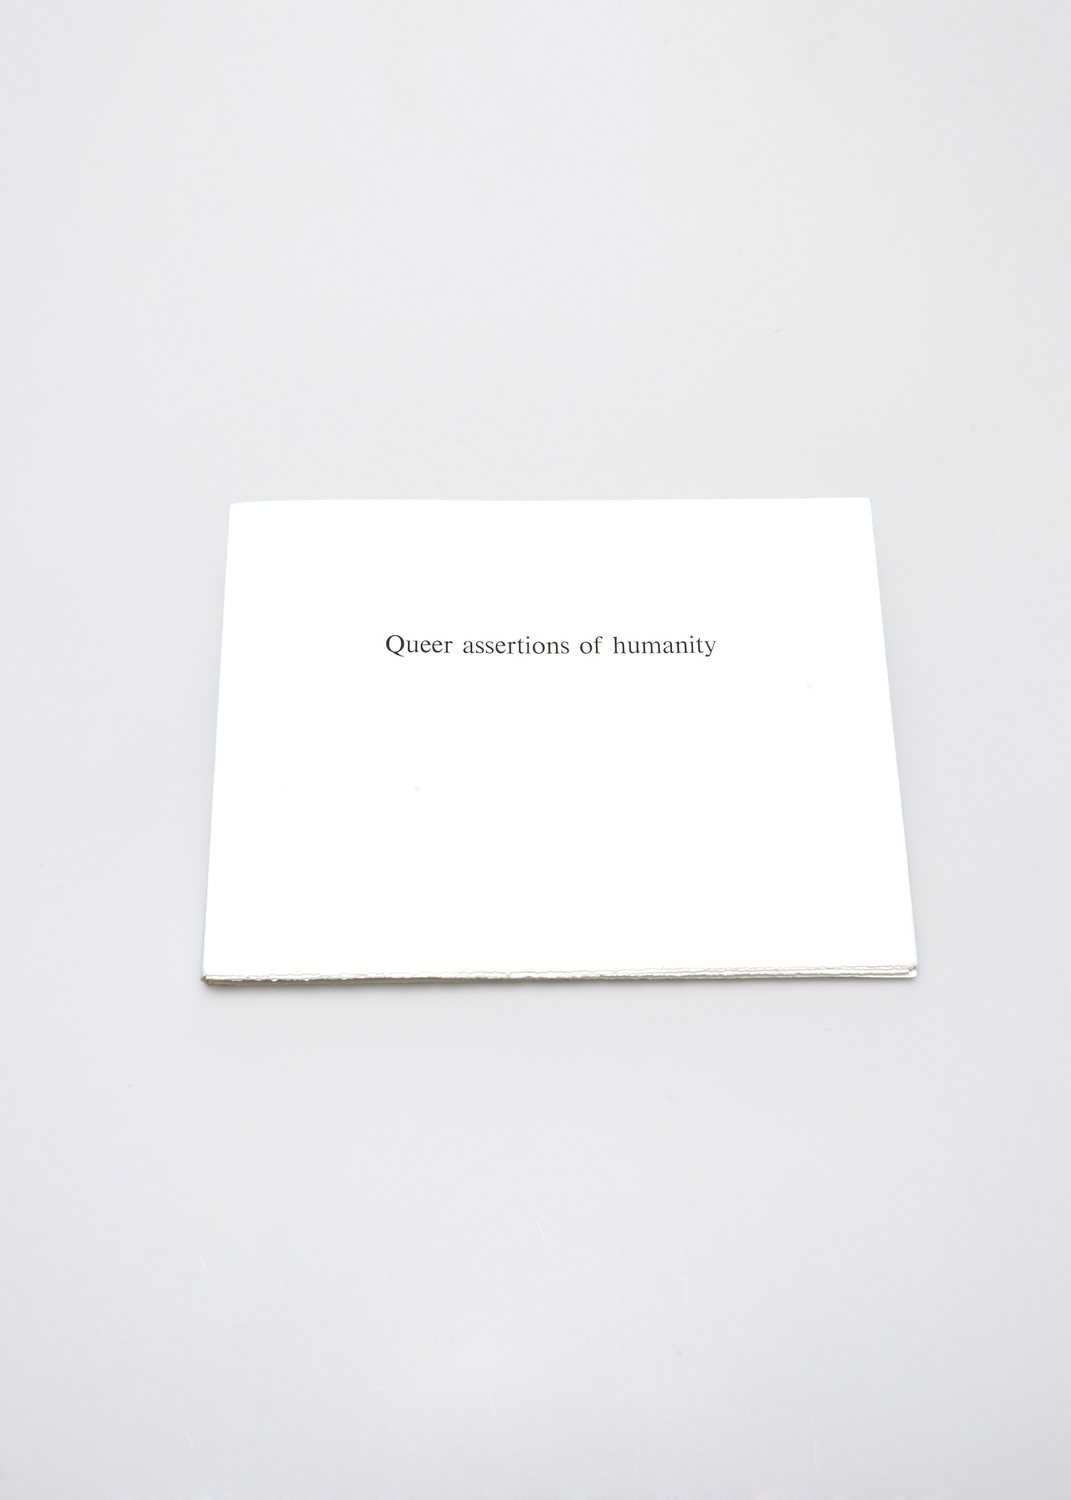 Queer assertions of humanity    Text by oshua Watsky and engraving by René Laubiès  2004 | 33 x 25 cm | engraving and typography | 64 prints | editor A. Piroir